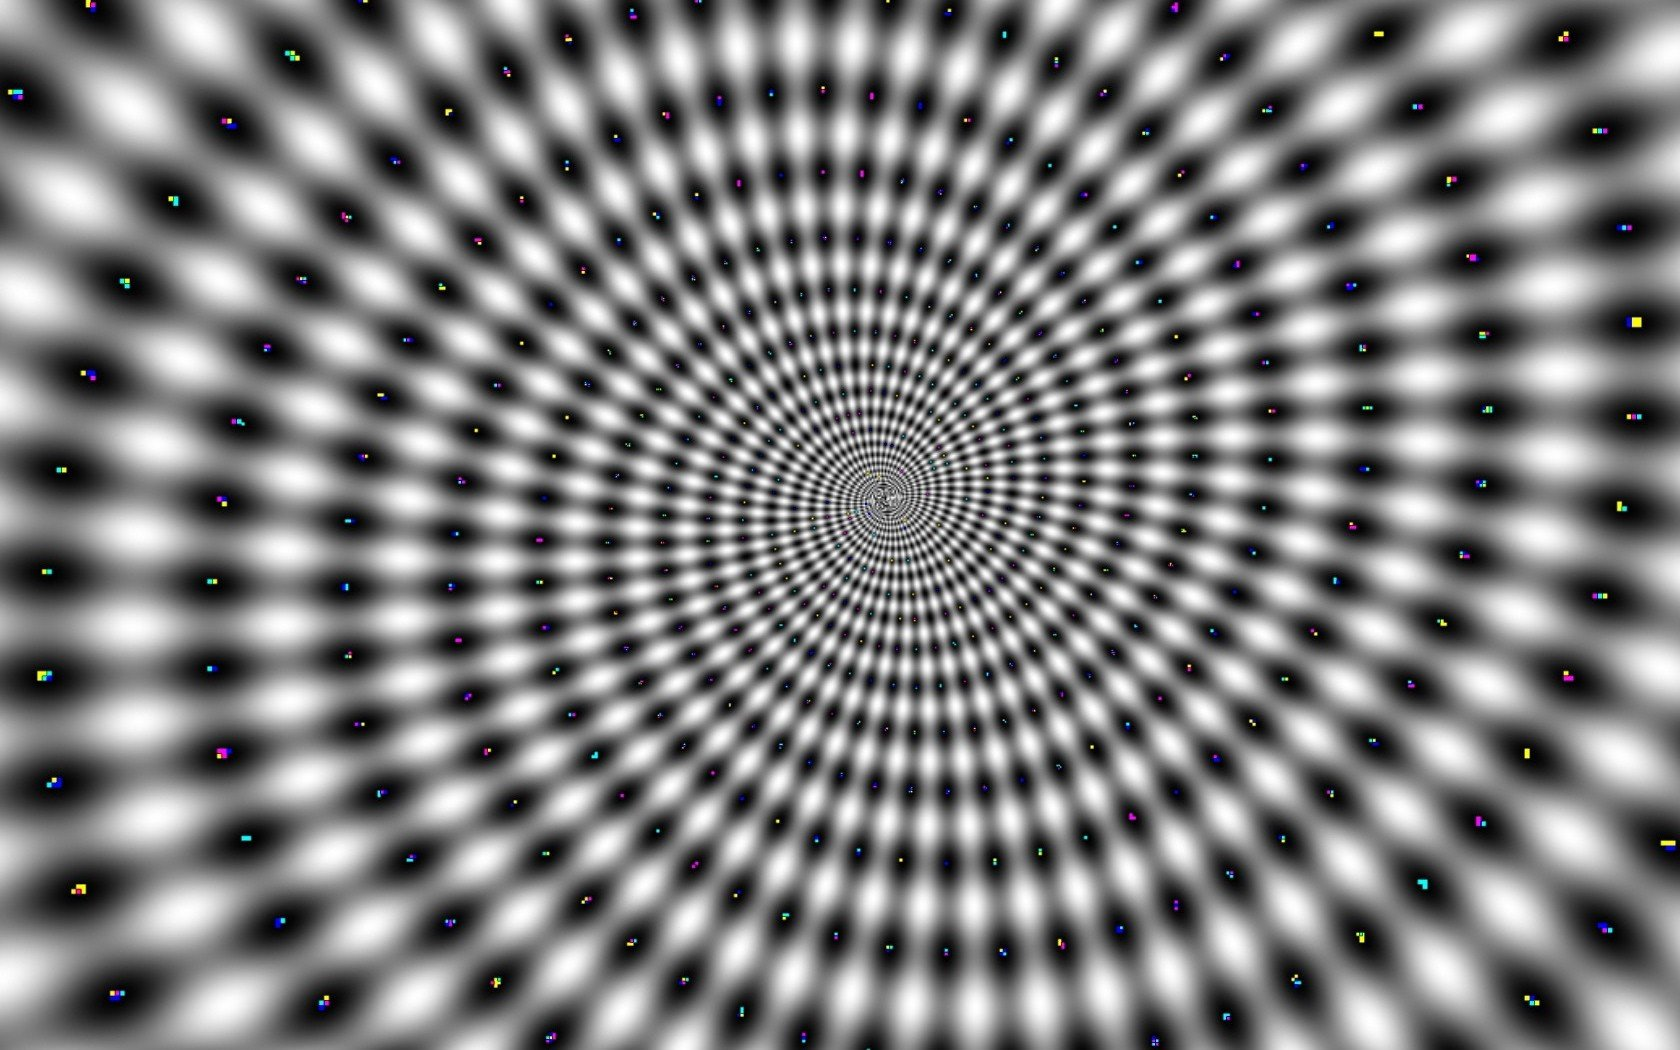 3d Illusion Wallpaper Download Psychedelic Optical Illusion Spiral Wallpapers Hd